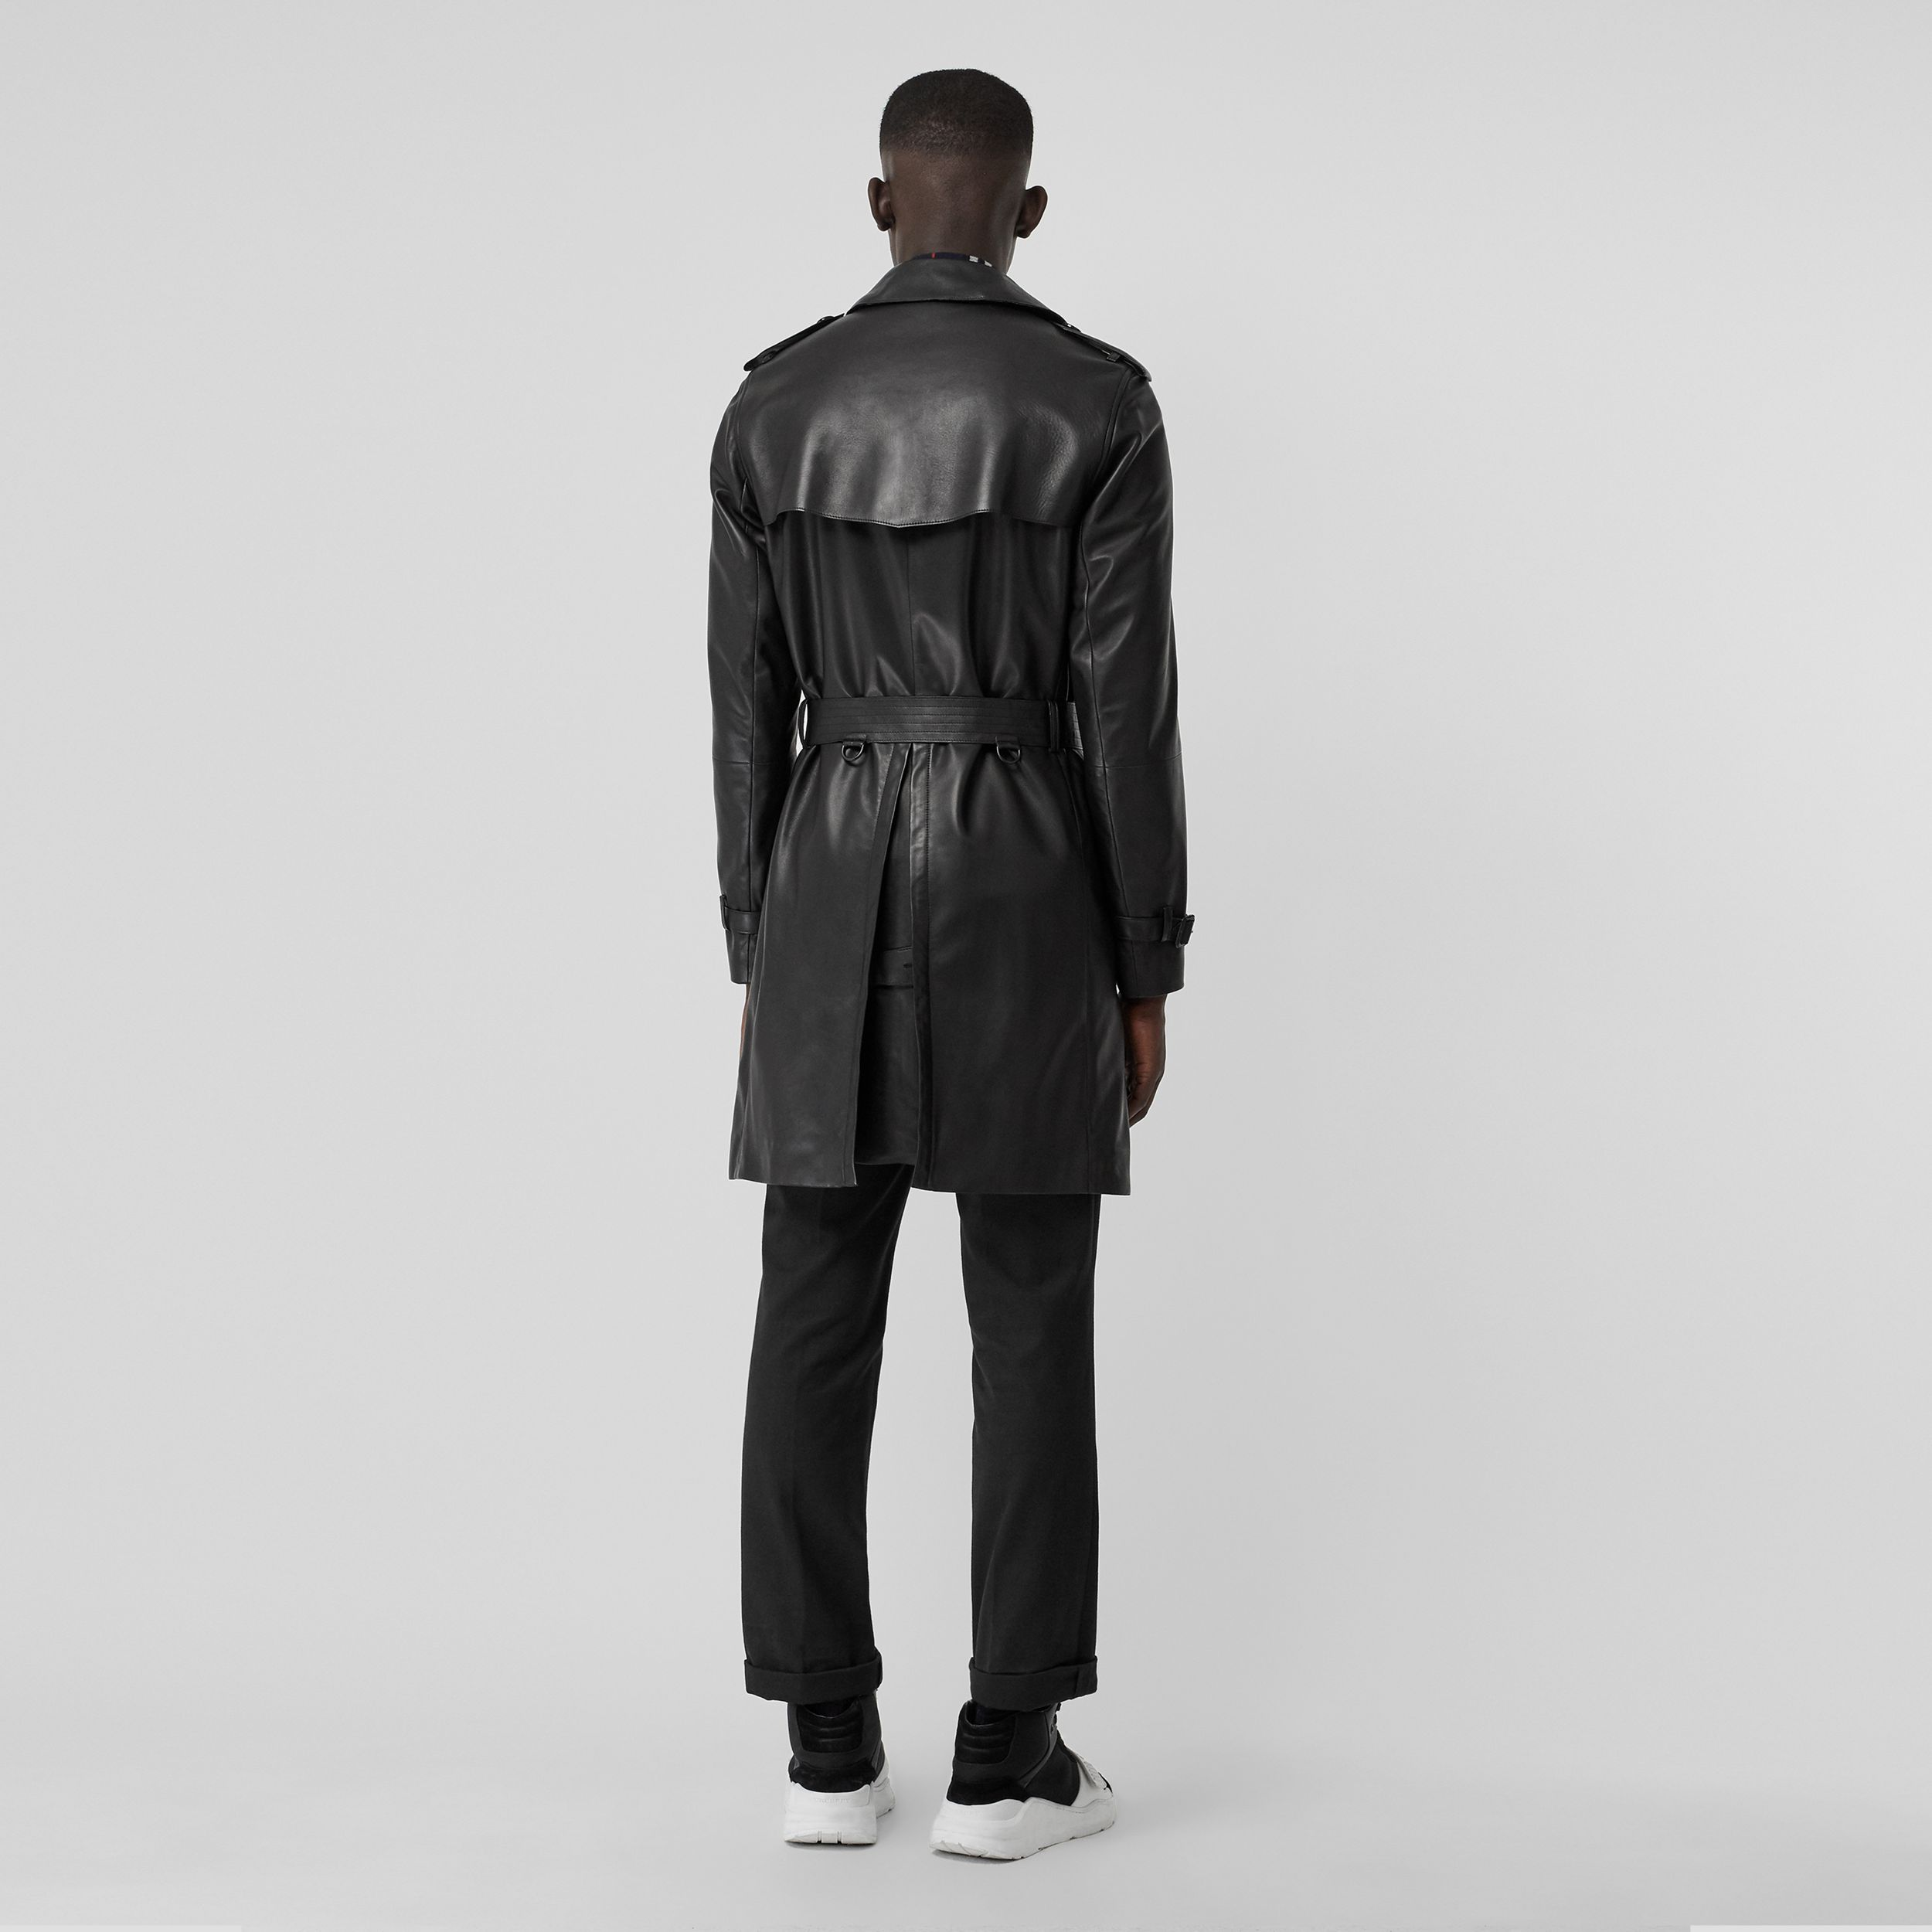 Lambskin Trench Coat in Black - Men | Burberry - 3